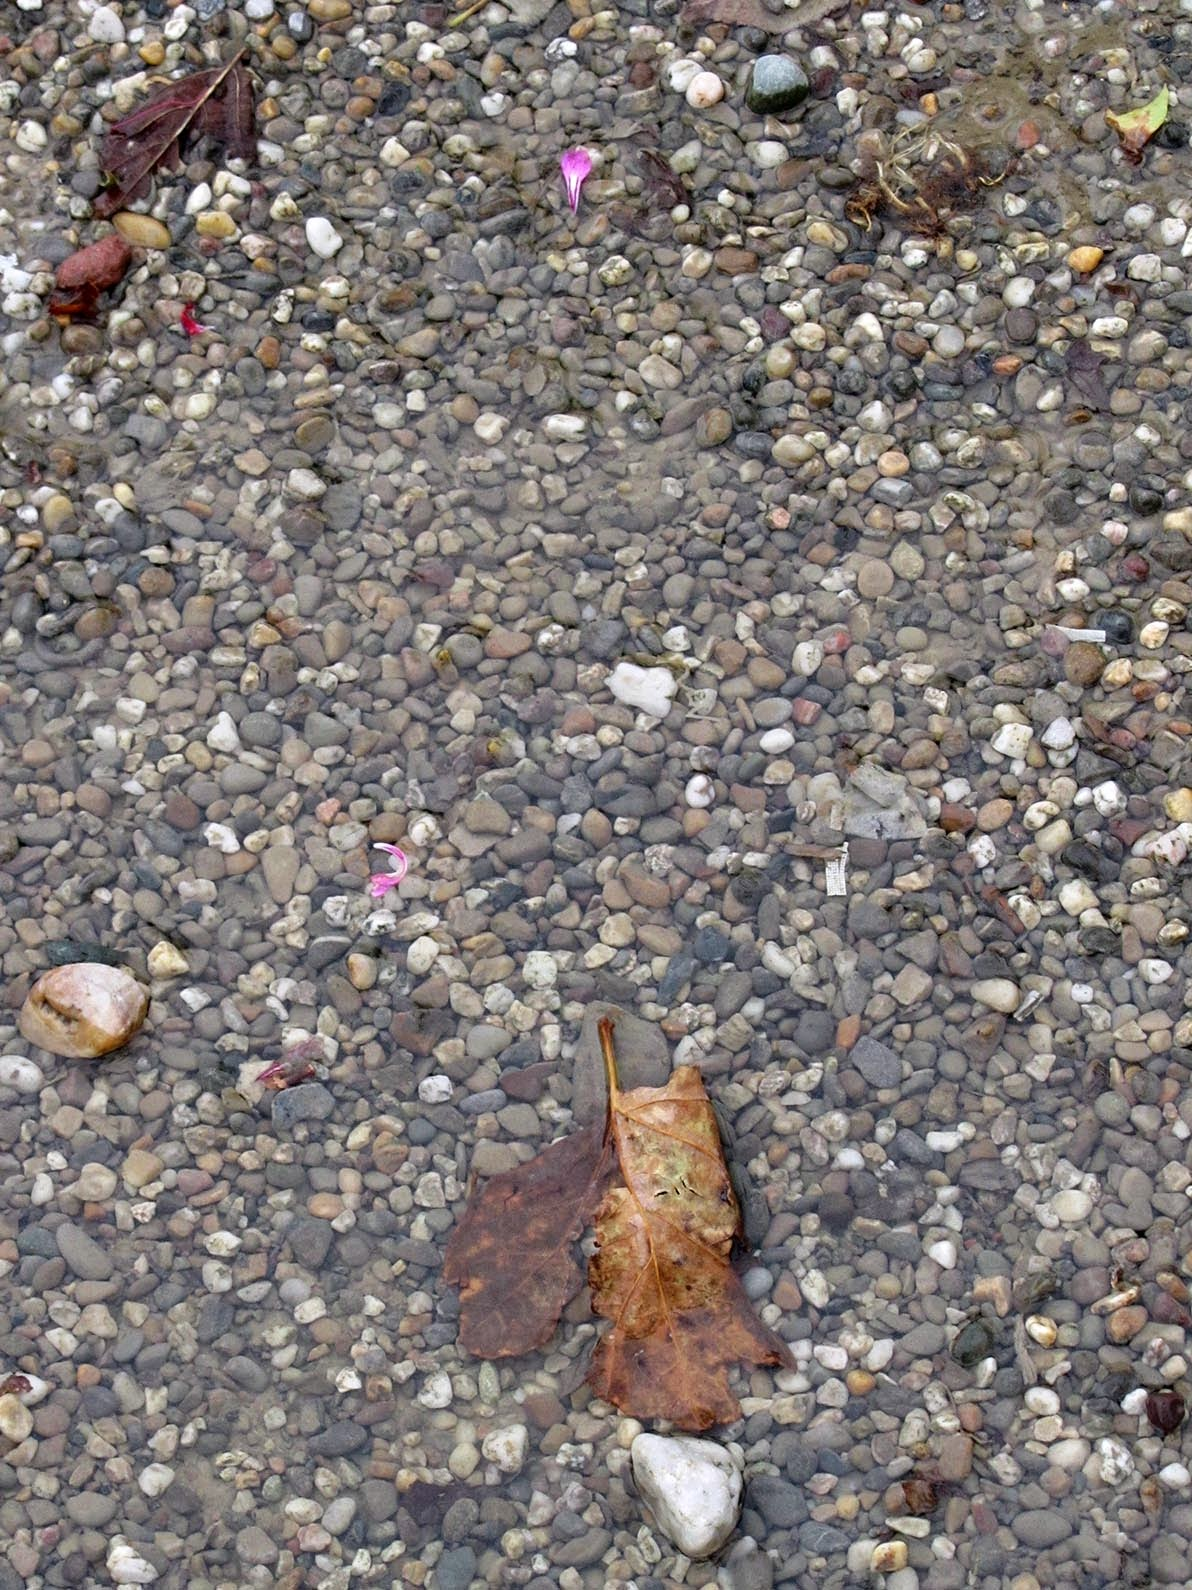 gravel, water and leaves